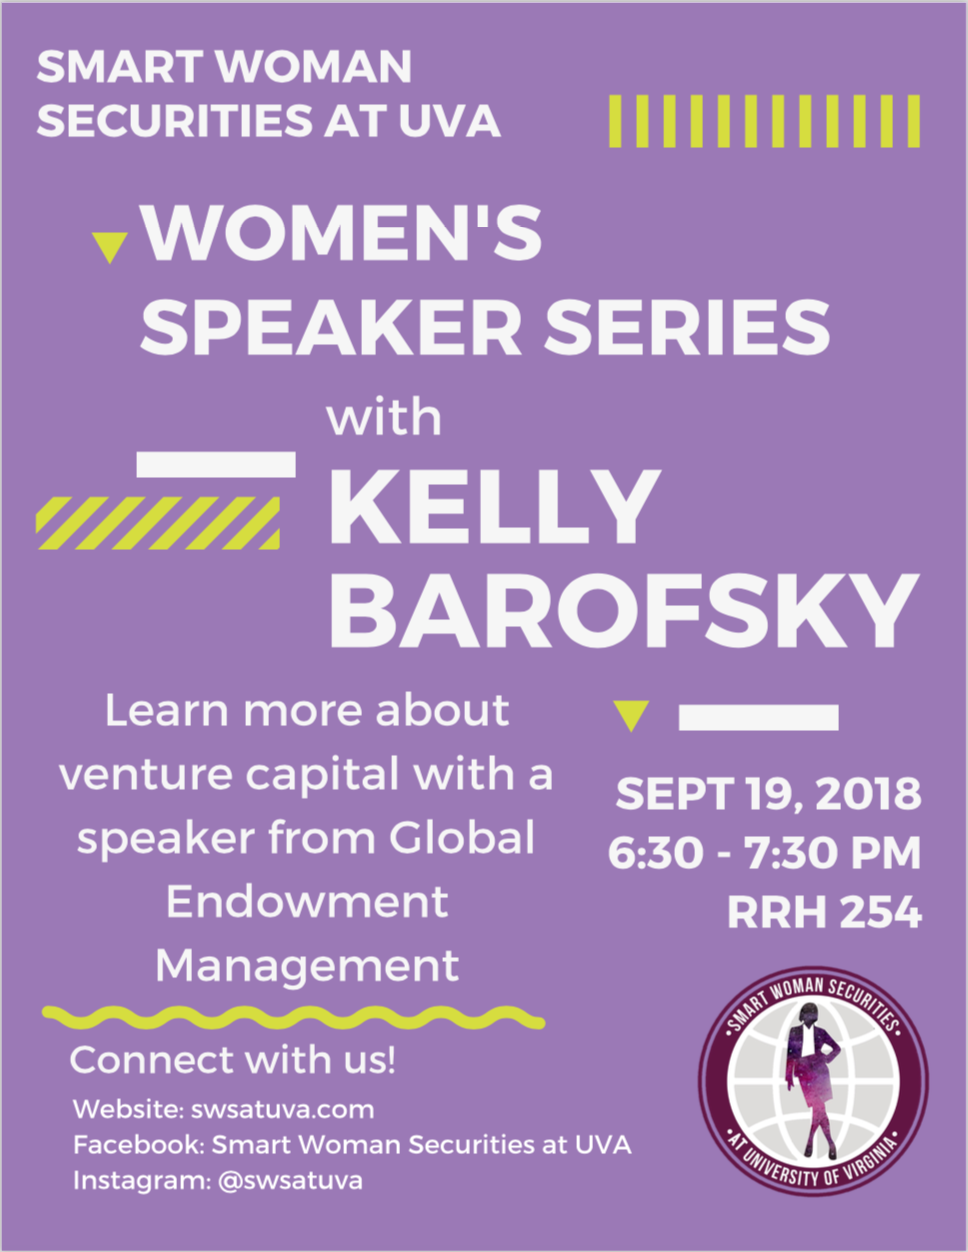 SWS kicked off the Fall 2018 Women's Speaker Series with Kelly Barofsky from Global Endowment Management. The session held on Wednesday, September 19th provided an introduction to venture capital for members of SWS and other interested students, as well as an overview of working at Global Endowment Management.